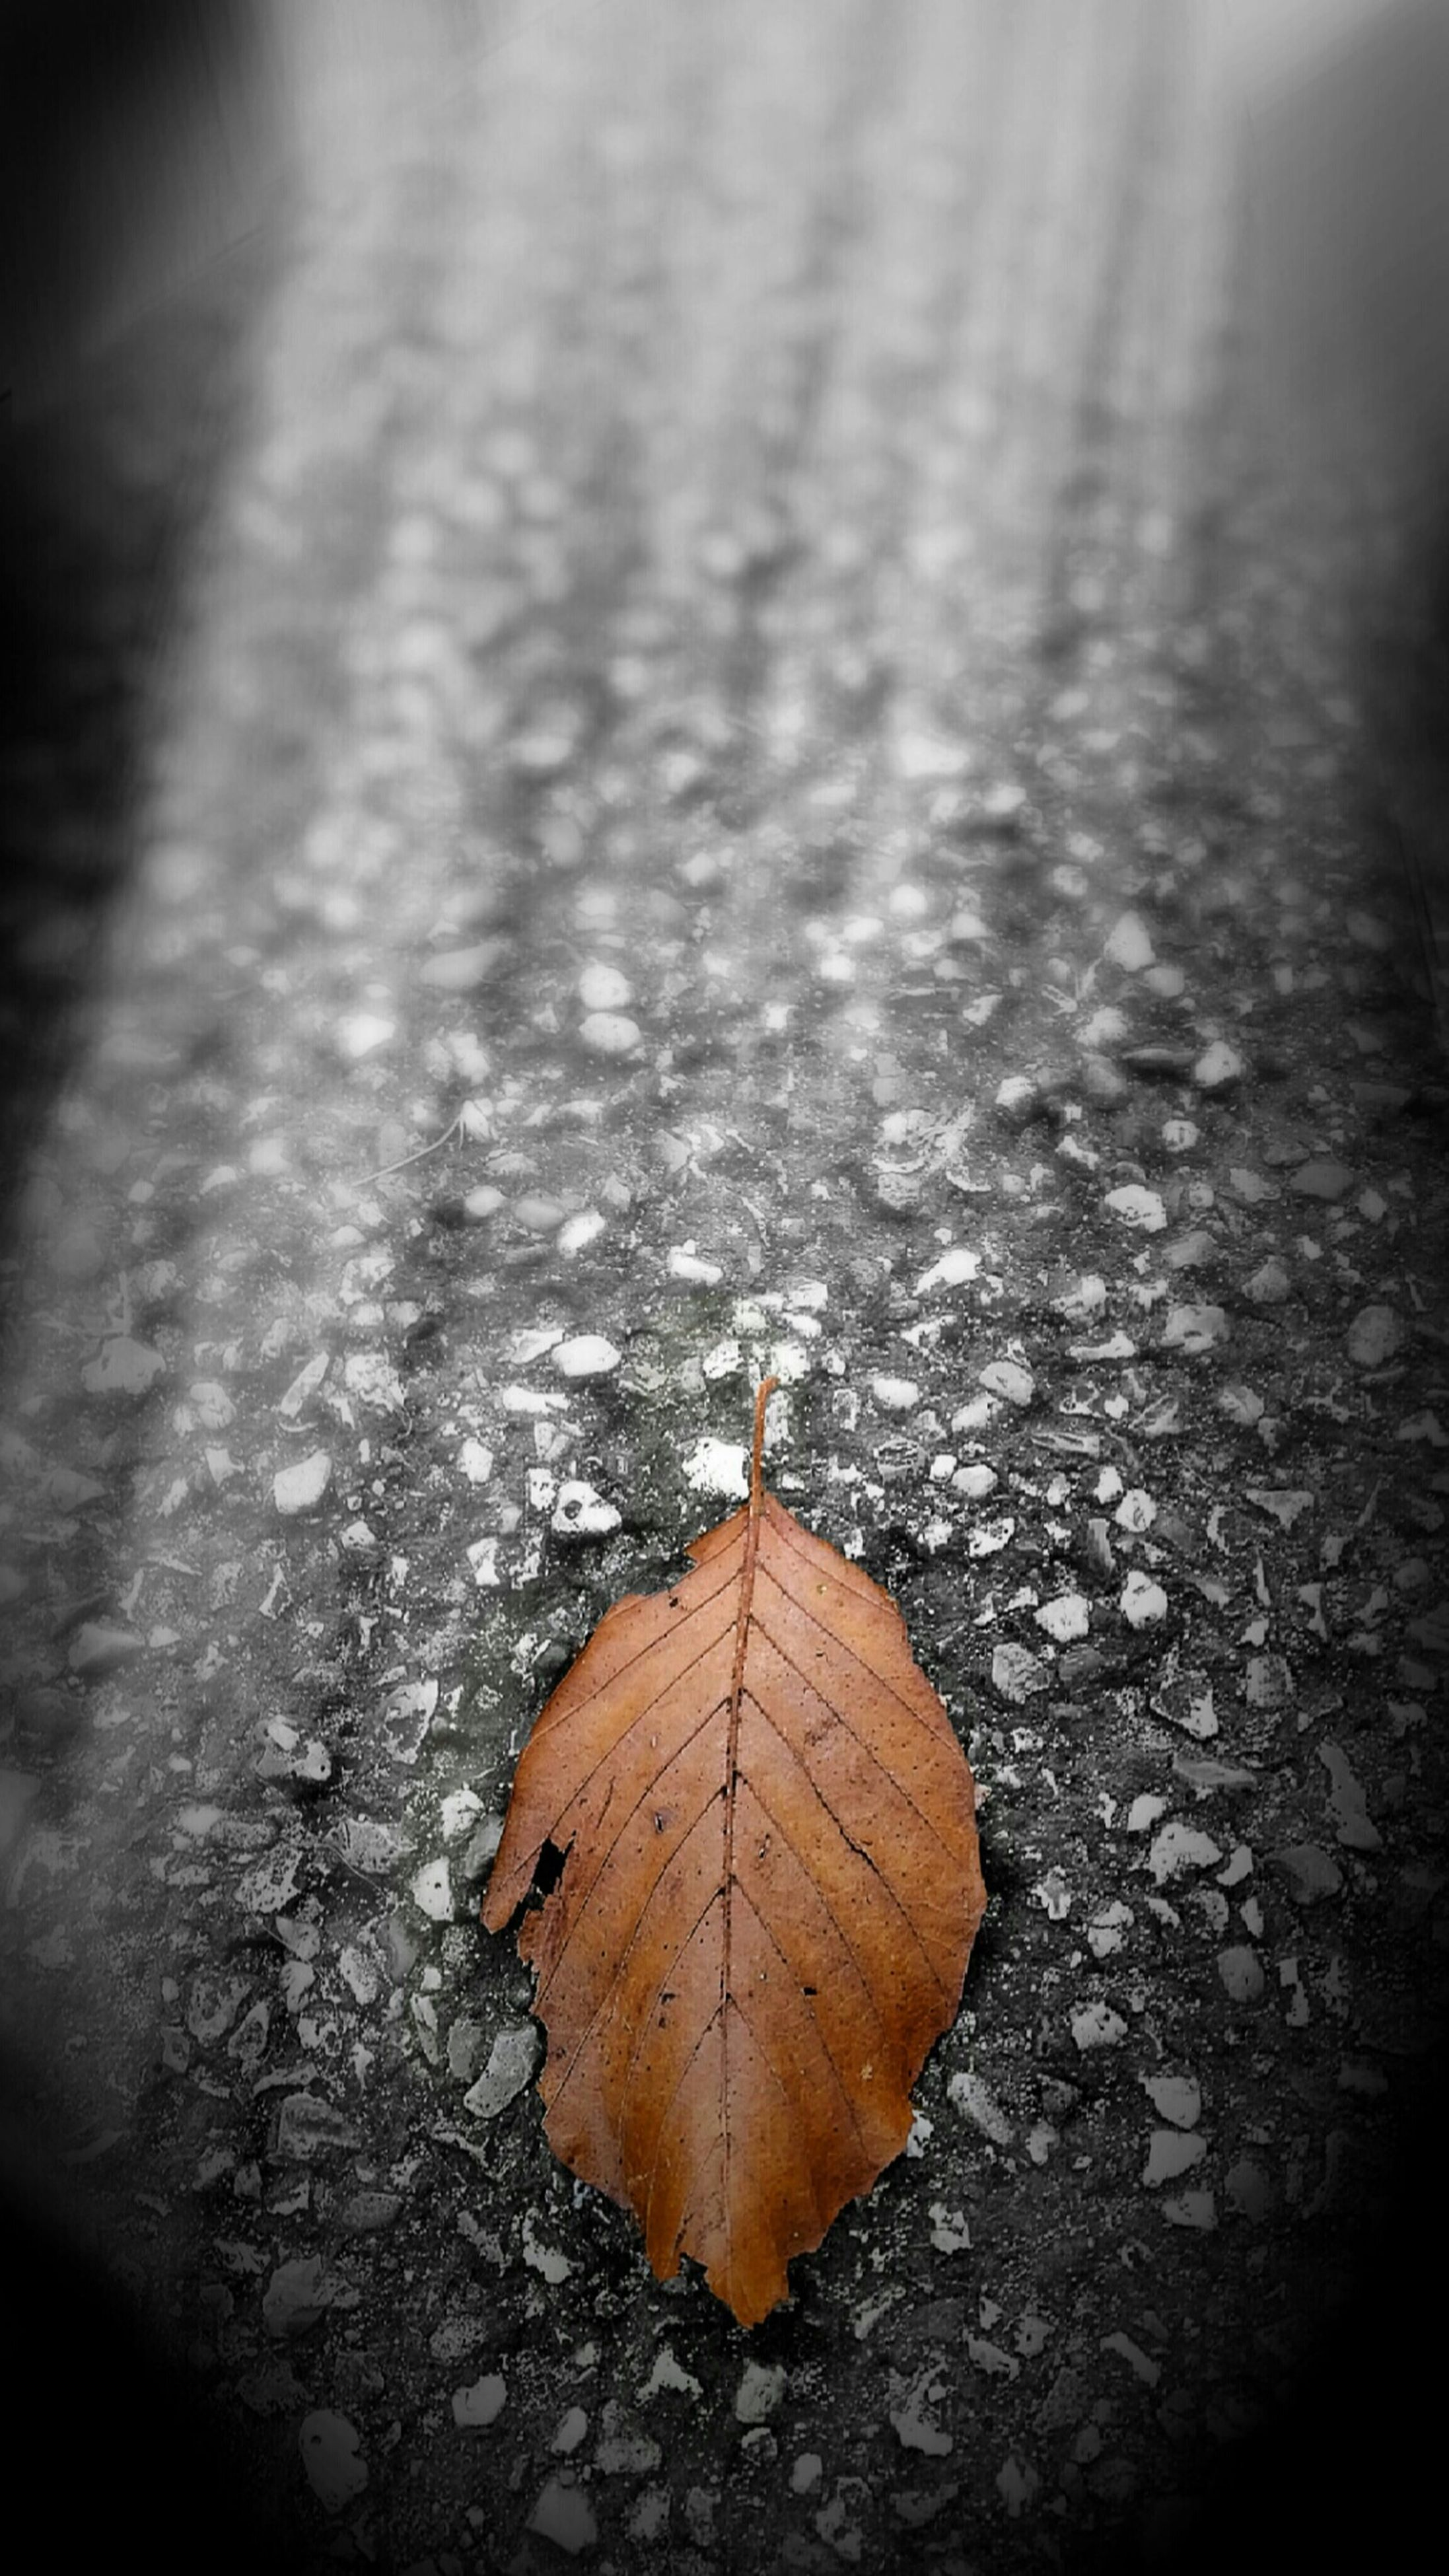 leaf, autumn, dry, close-up, textured, fallen, natural pattern, street, change, leaf vein, nature, season, asphalt, maple leaf, selective focus, road, outdoors, leaves, no people, ground